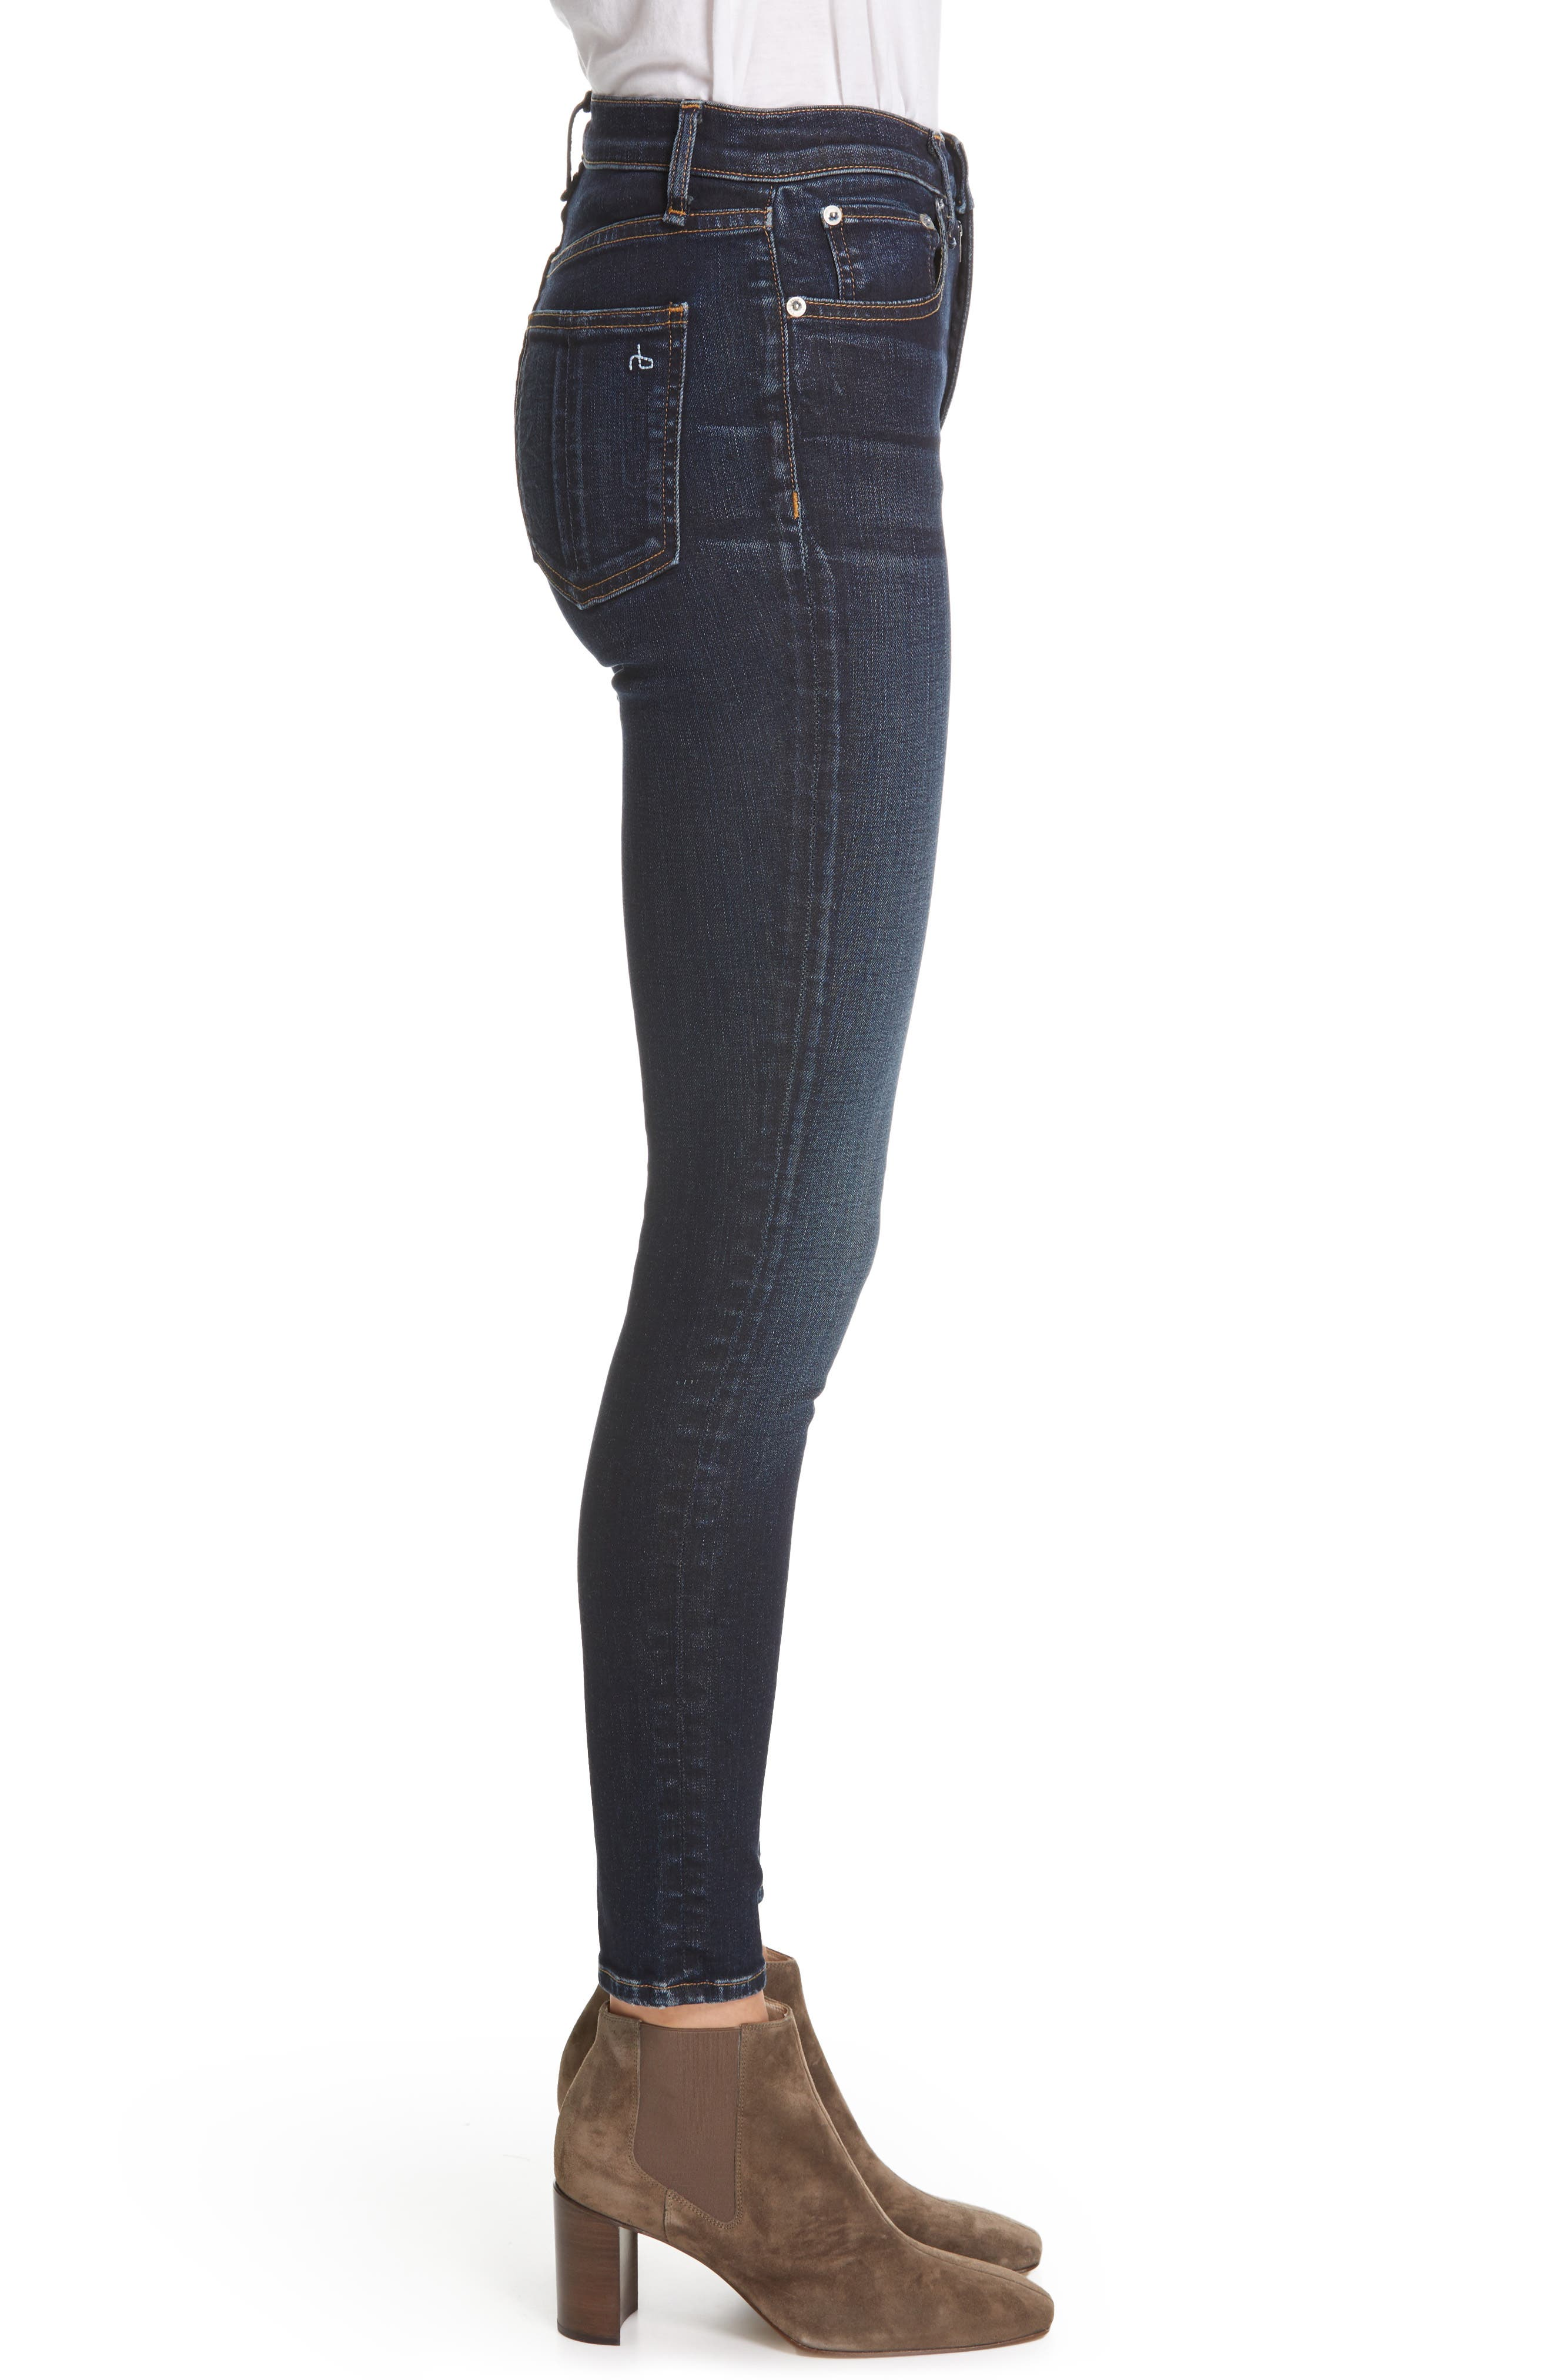 JEAN High Waist Ankle Skinny Jeans,                             Alternate thumbnail 3, color,                             RIVERDALE